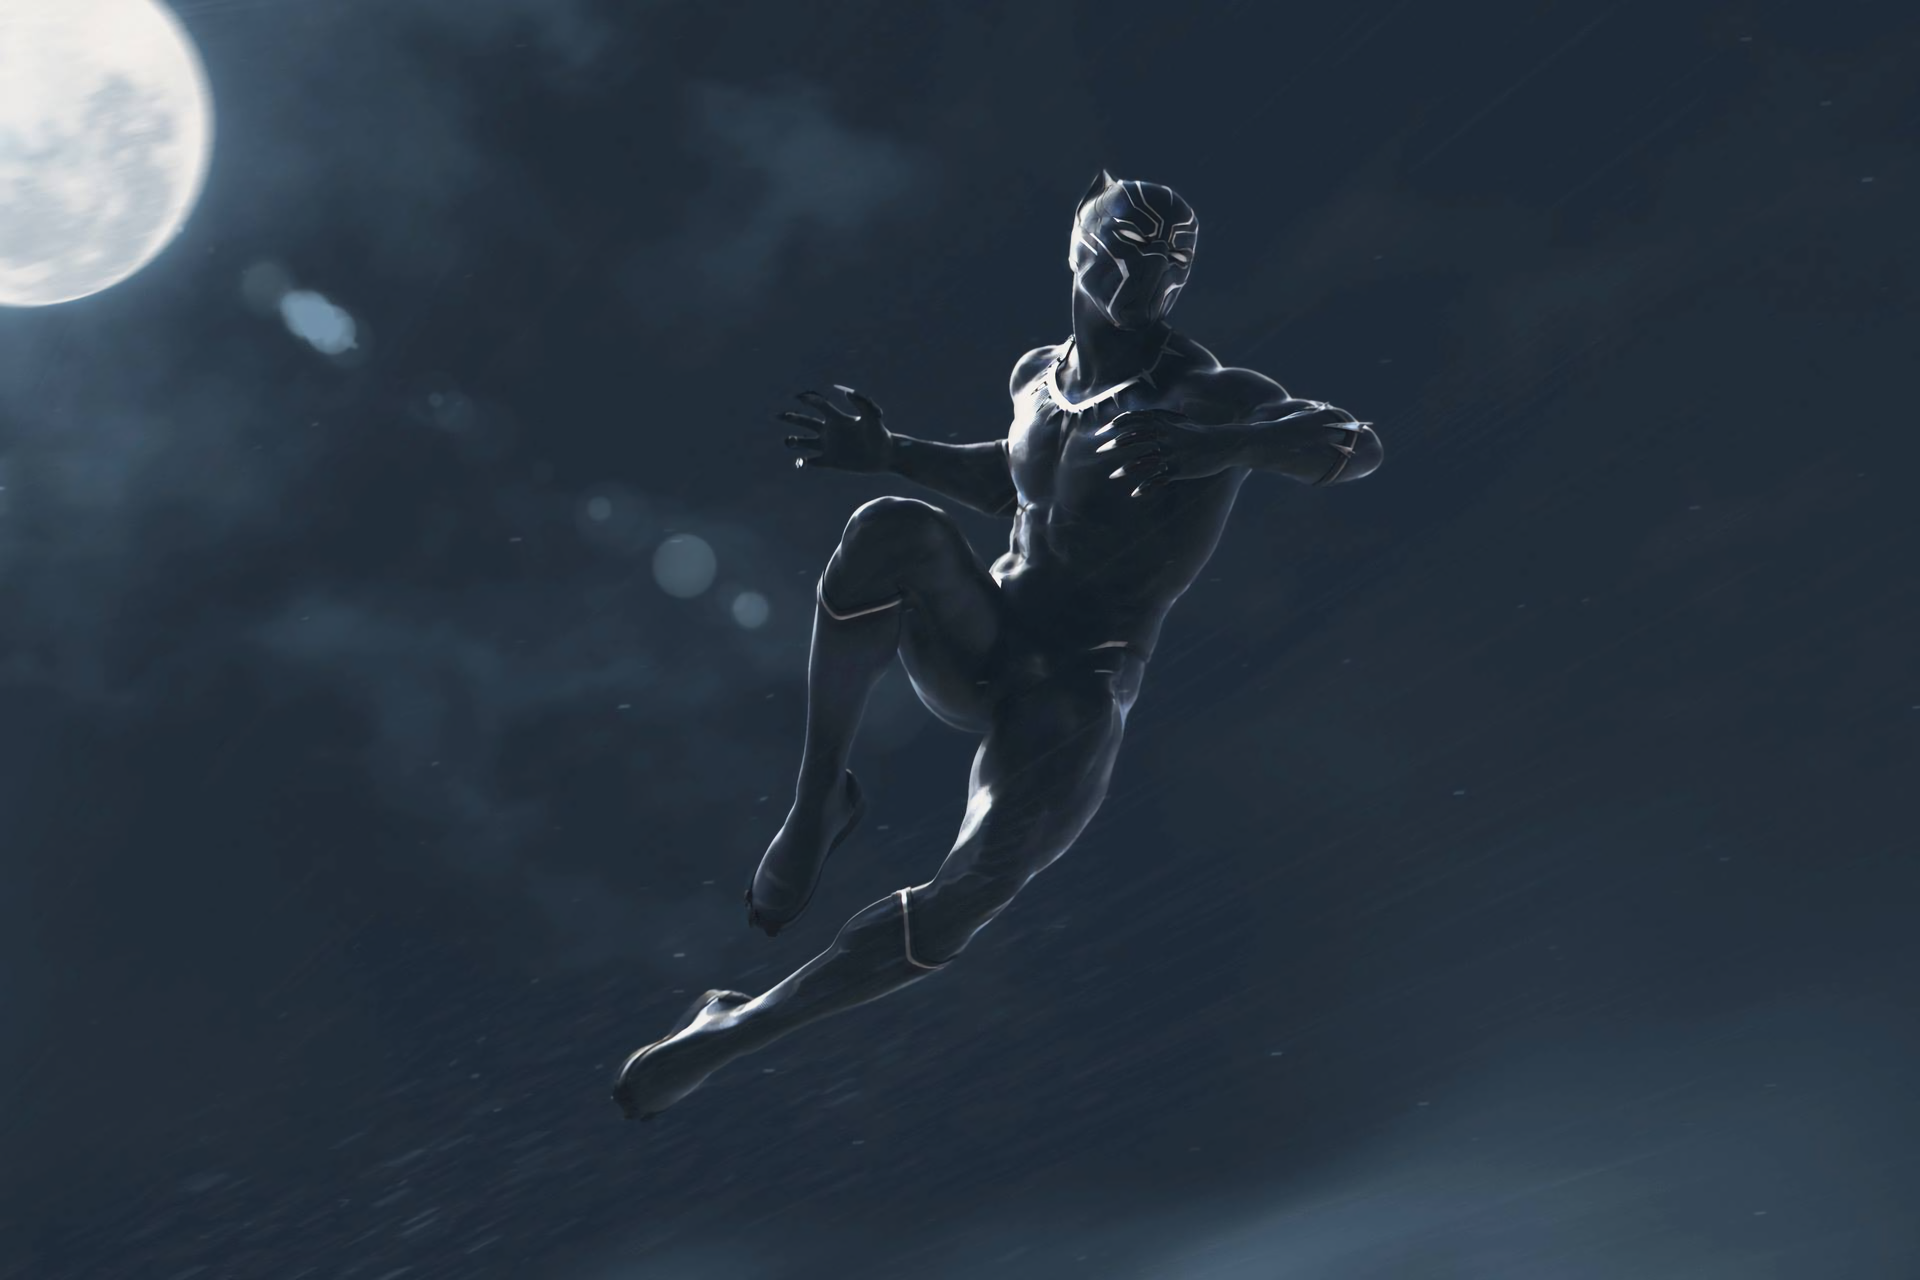 Black Panther Hd Wallpaper Background Image 1920x1280 Id 878088 Wallpaper Abyss